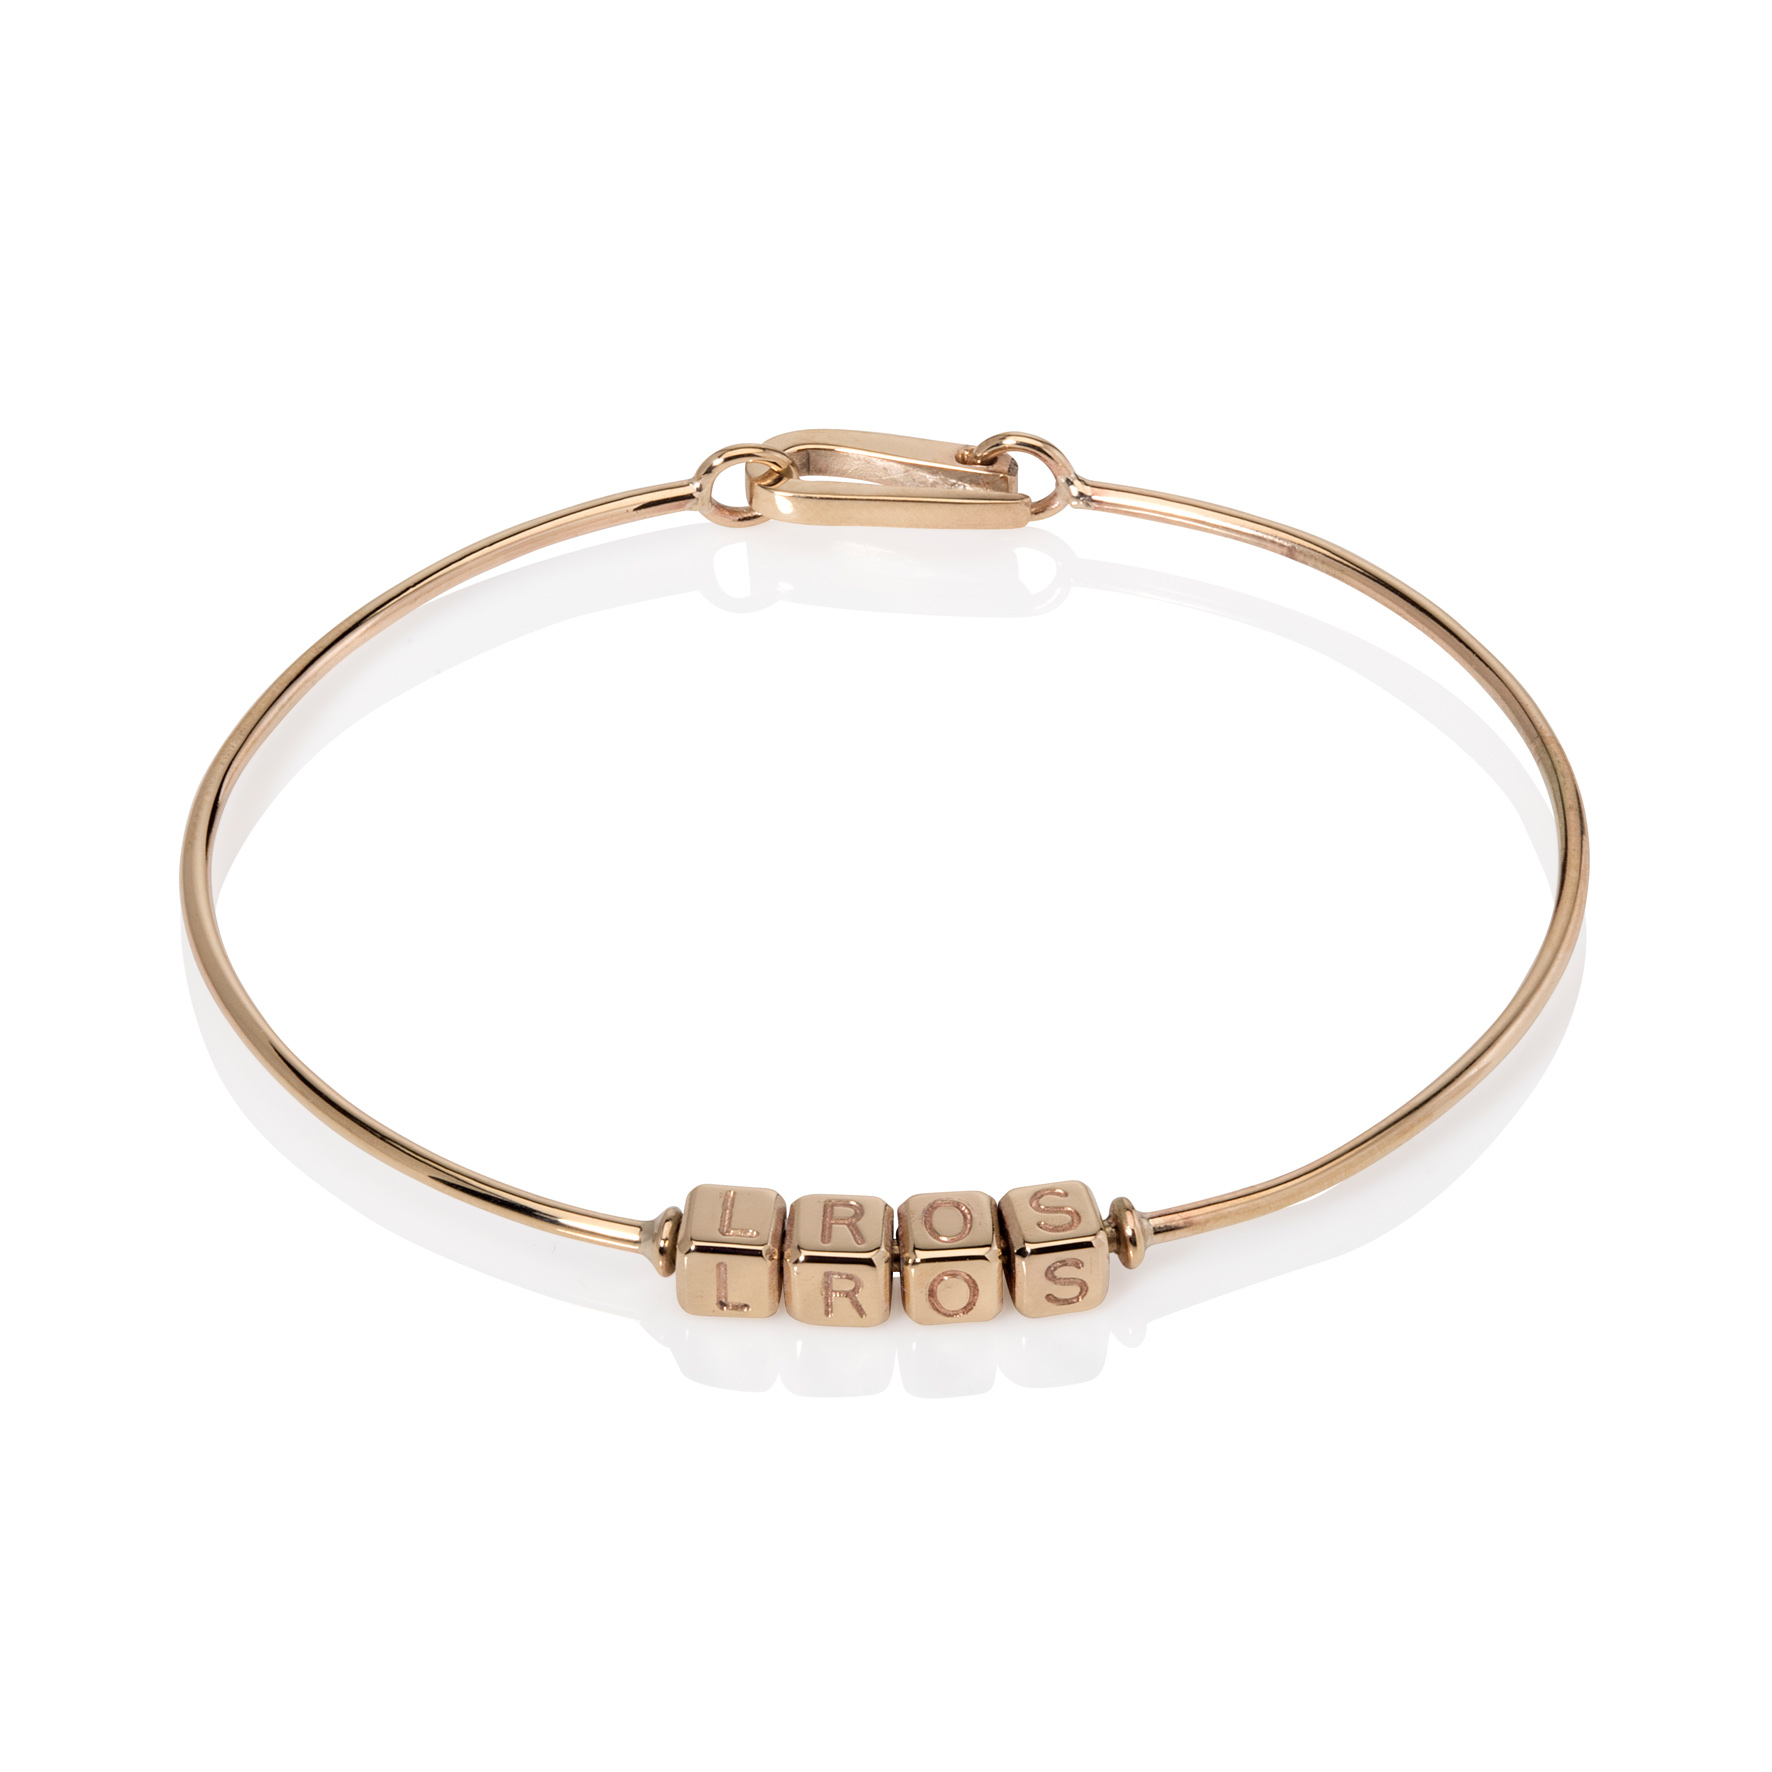 Personalised-Name-Bangle-Bracelet-9ct-Yellow-Gold-Recycled-Handmade-by Sarah-Herriot-1